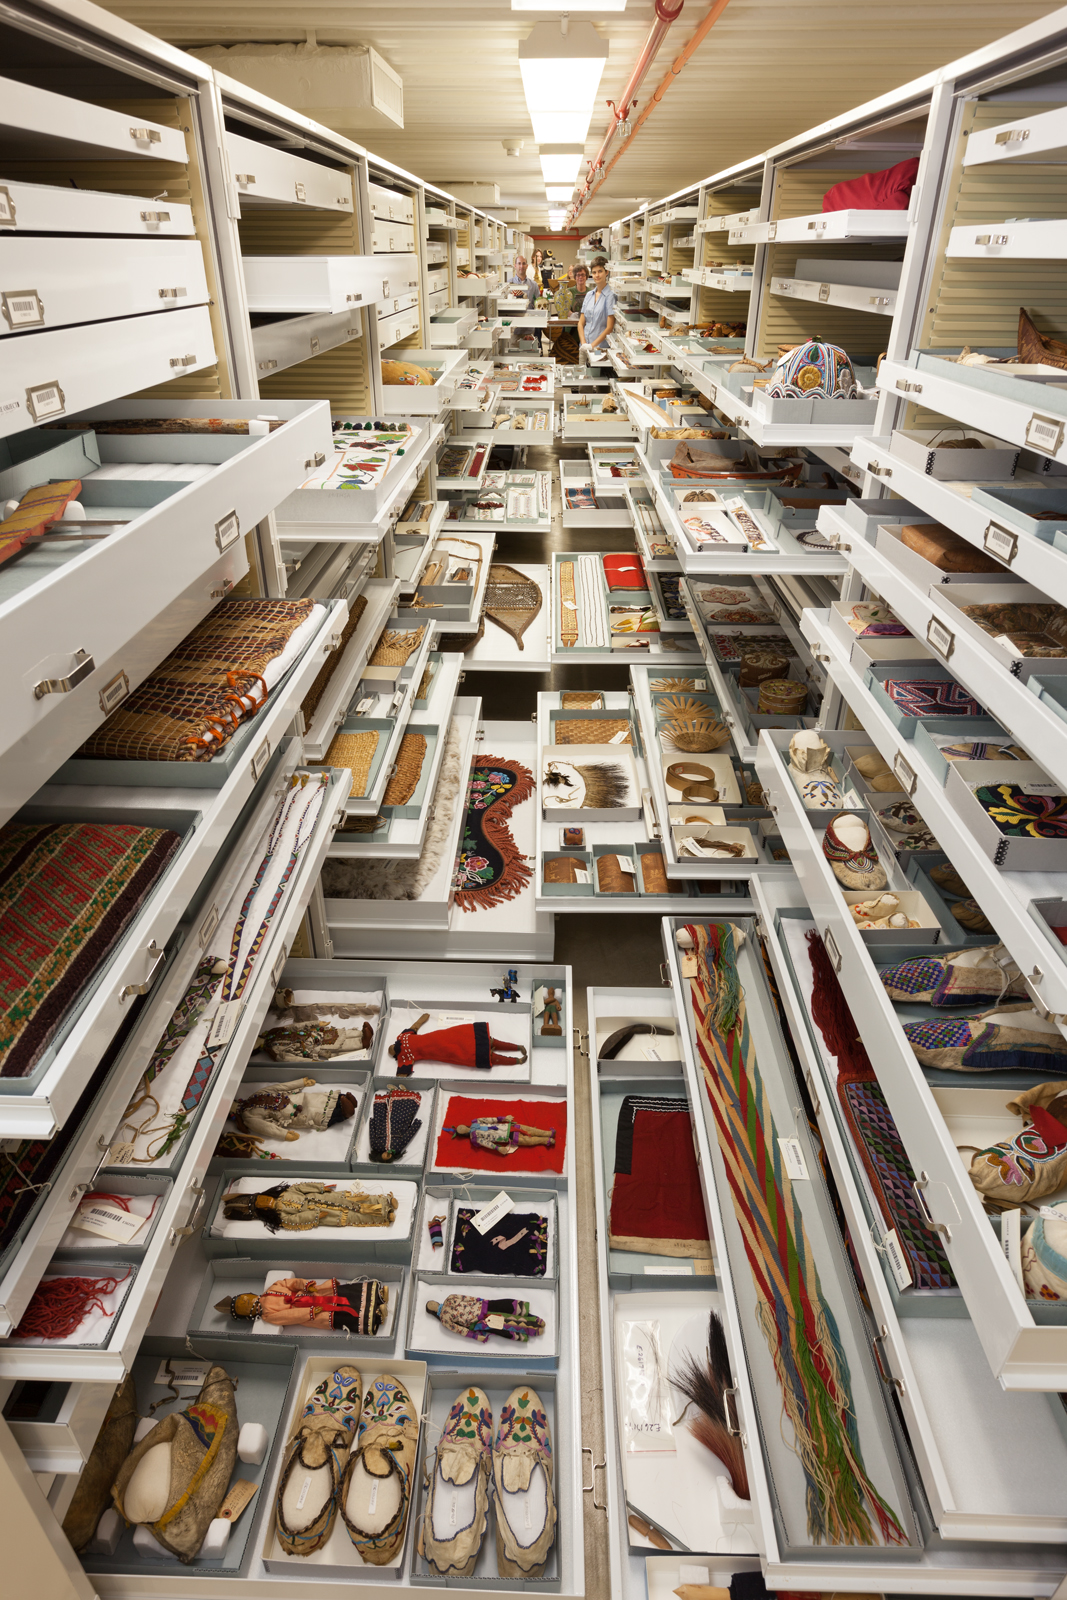 Anthropological collections are displayed in Pod 1 at the Smithsonian Institution's Museum Support Center in Suitland, Maryland.